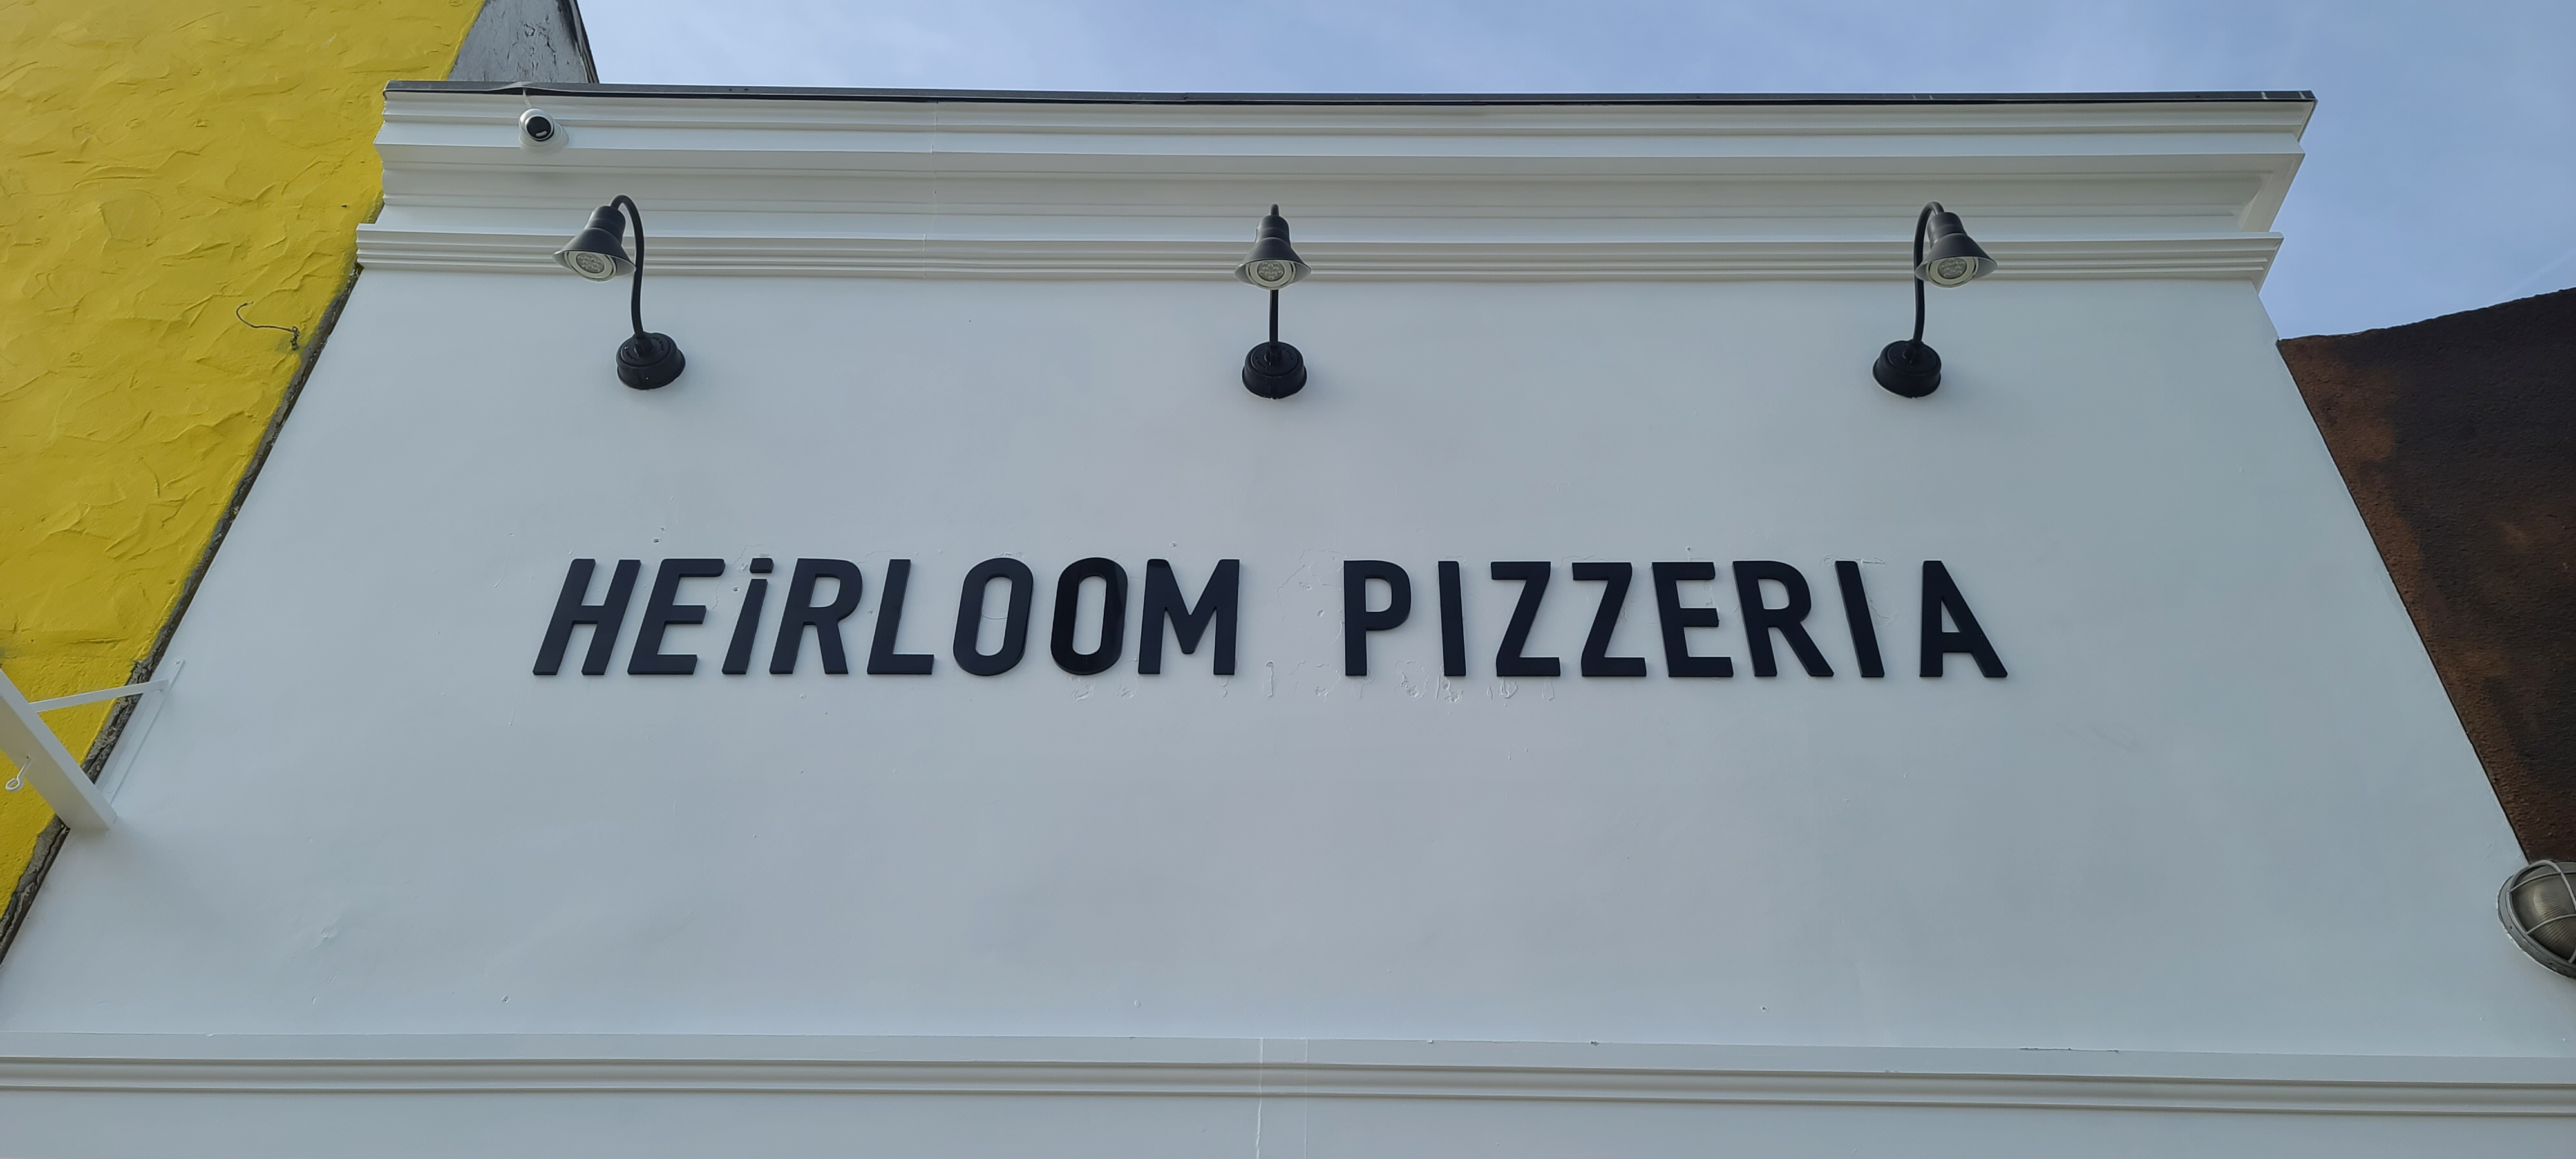 Quality signage increases brand visibility and attract customers. Like these dimensional letters for Heirloom Pizzeria in Los Angeles.